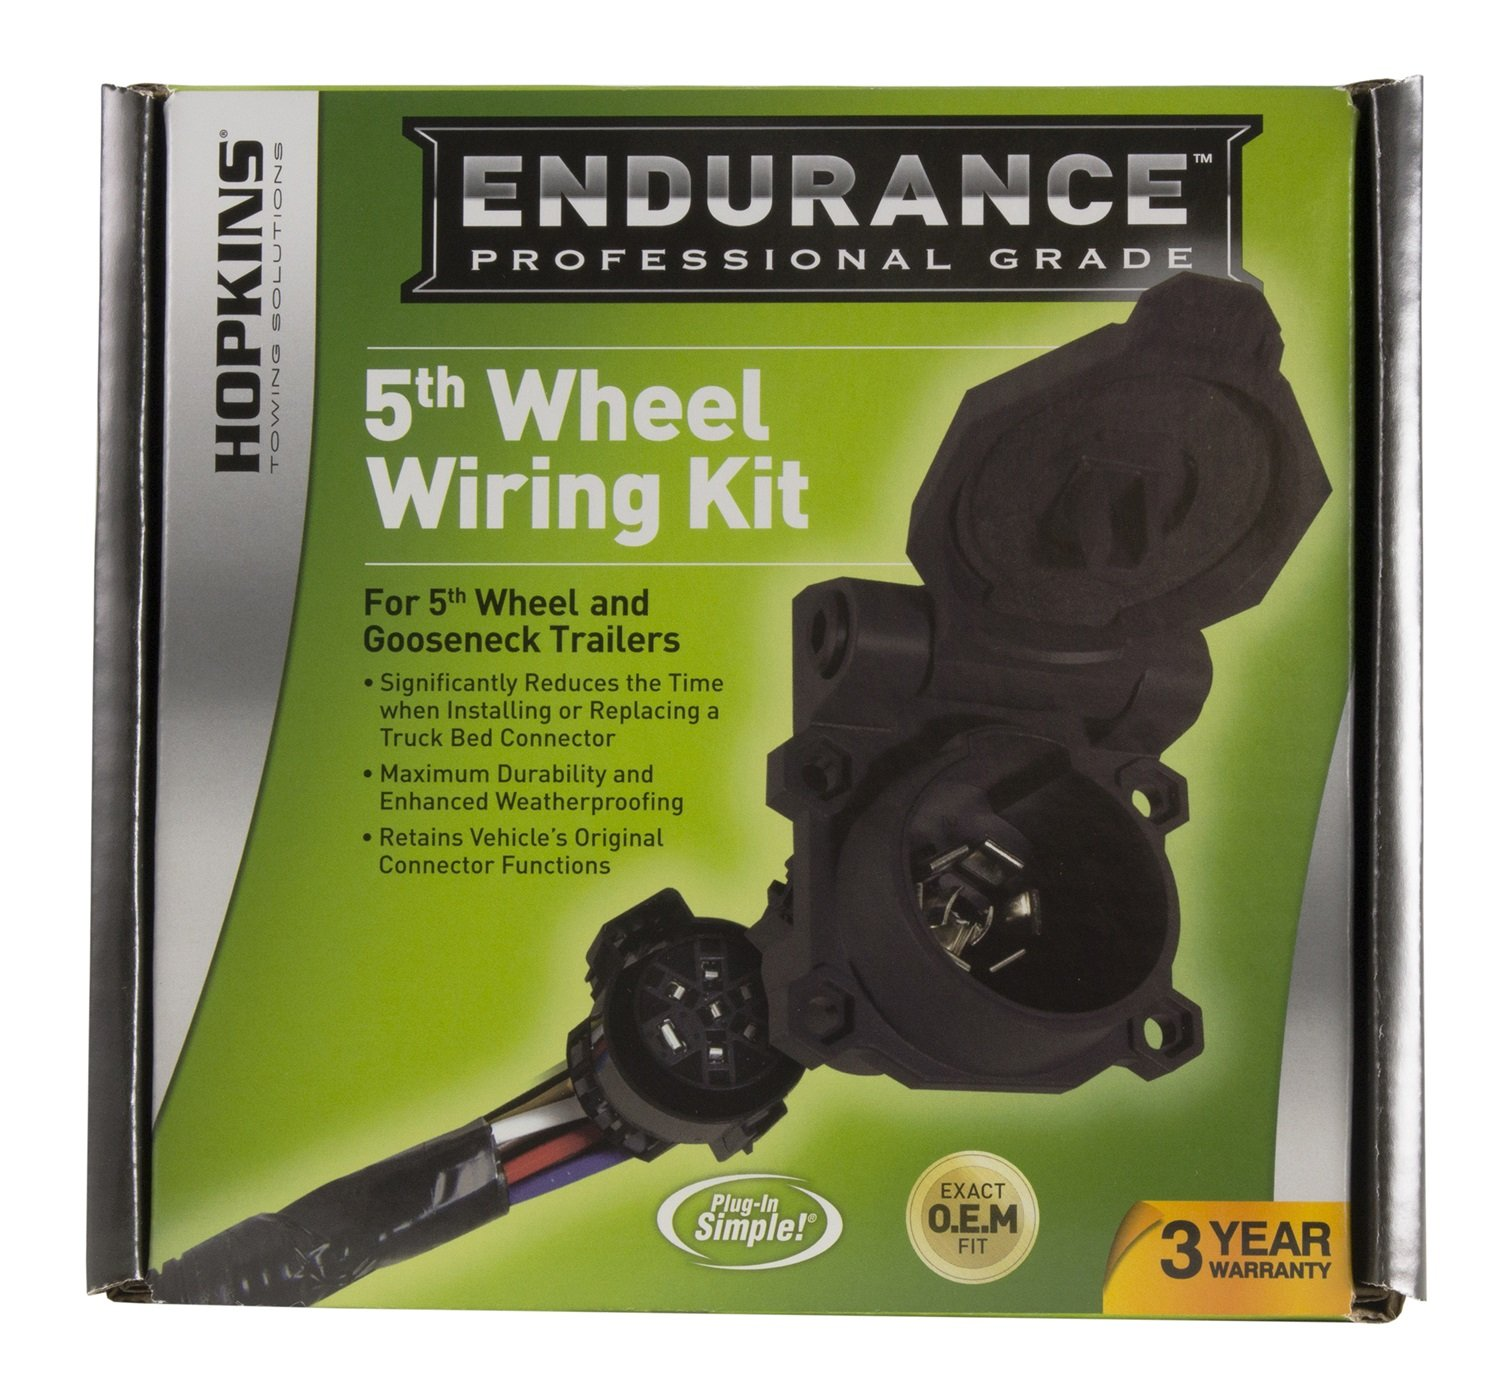 81BZnxZrPFL._SL1500_ amazon com hopkins 41157 endurance 5th wheel wiring kit automotive truck camper wiring harness at edmiracle.co